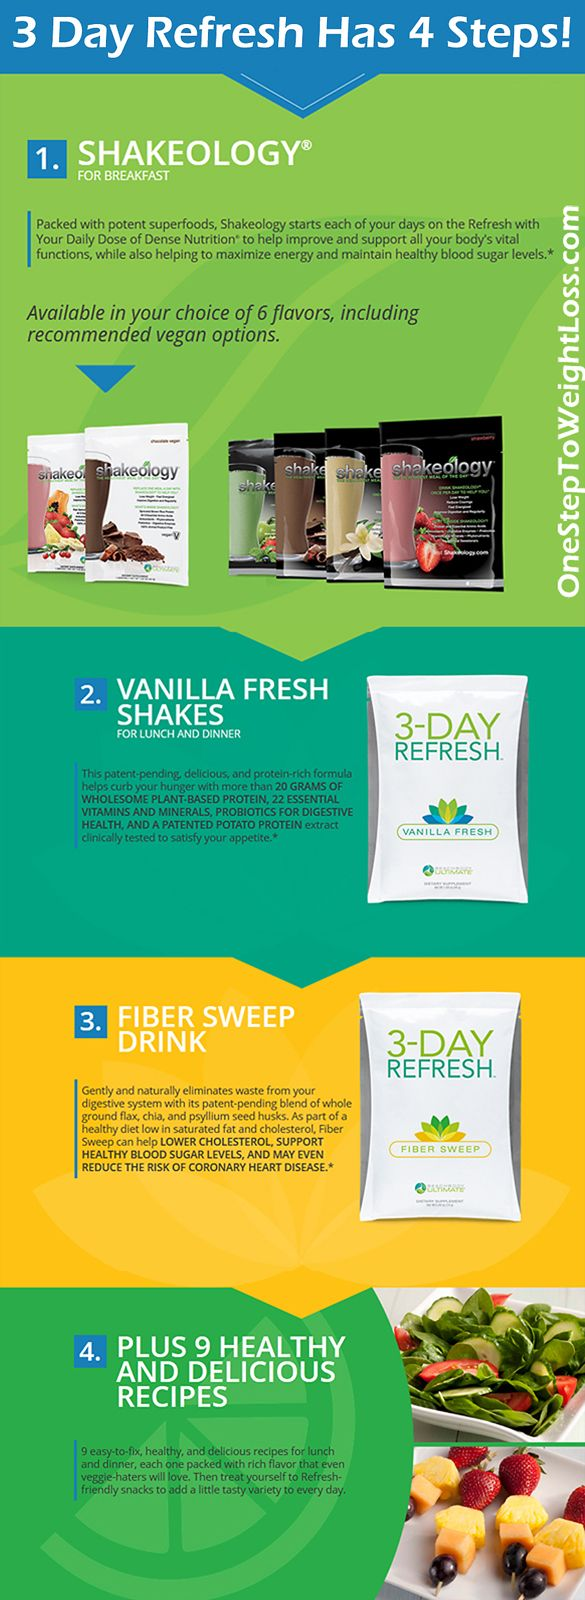 The Beachbody 3 Day Refresh results are insane from only following 4 simple steps! You lose up to 10 pounds & feel healthier in only 3 days! http://www.onesteptoweightloss.com/lose-weight-quick-3-day-detox #3DayWeightLoss